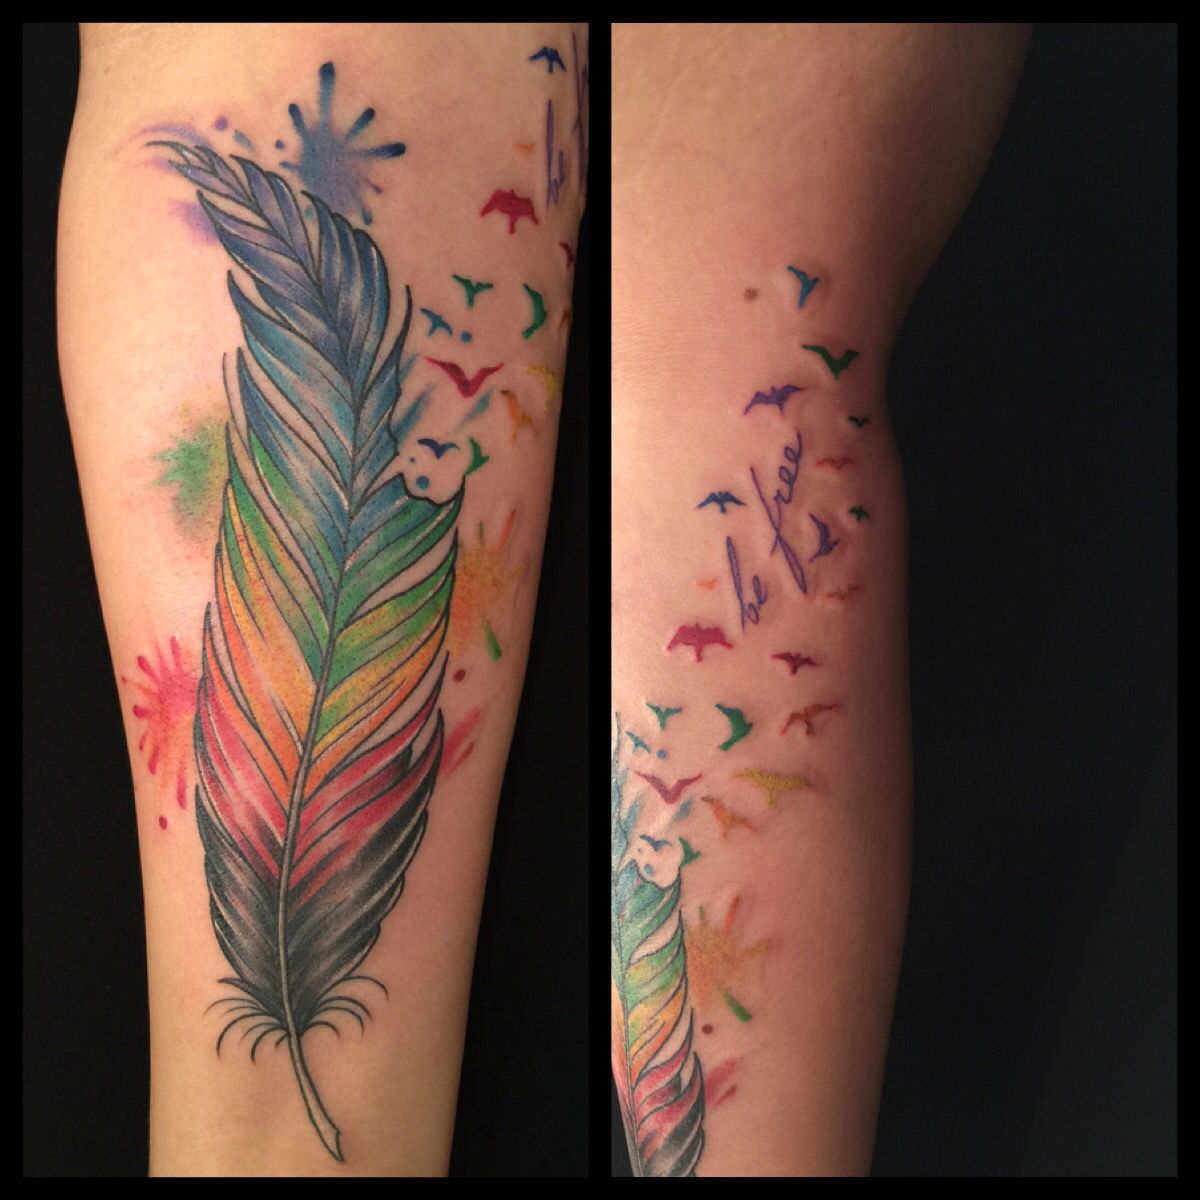 rainbow gay pride feather with birds tattoo watercolor tattoo. Black Bedroom Furniture Sets. Home Design Ideas